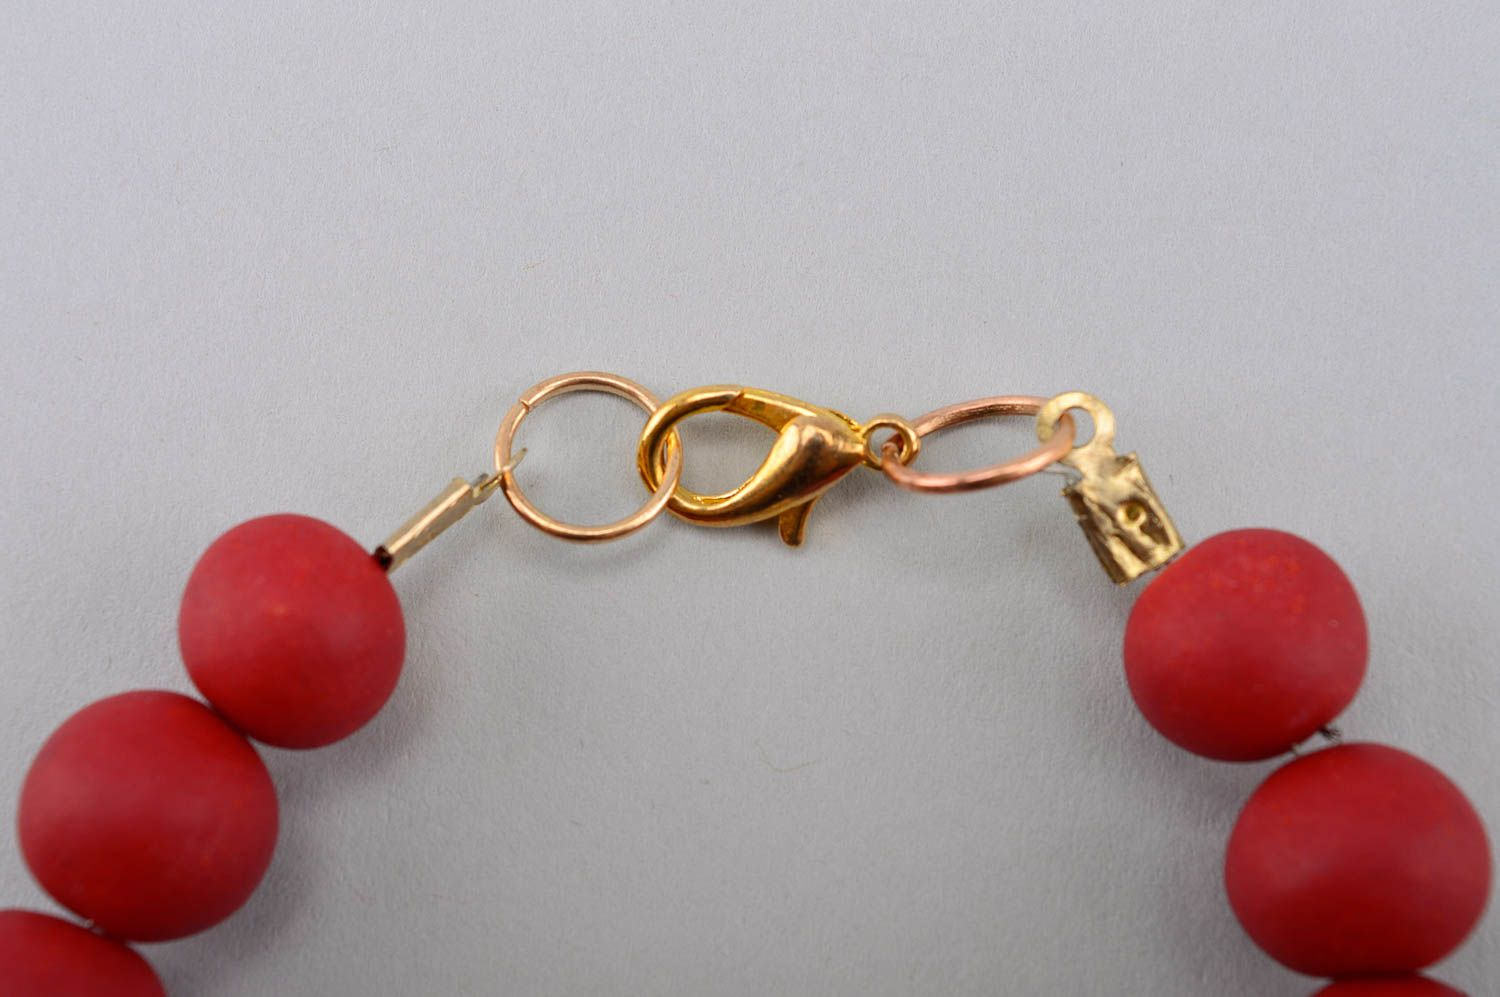 Handmade beautiful bracelet plastic red bracelet stylish wrist accessory photo 3